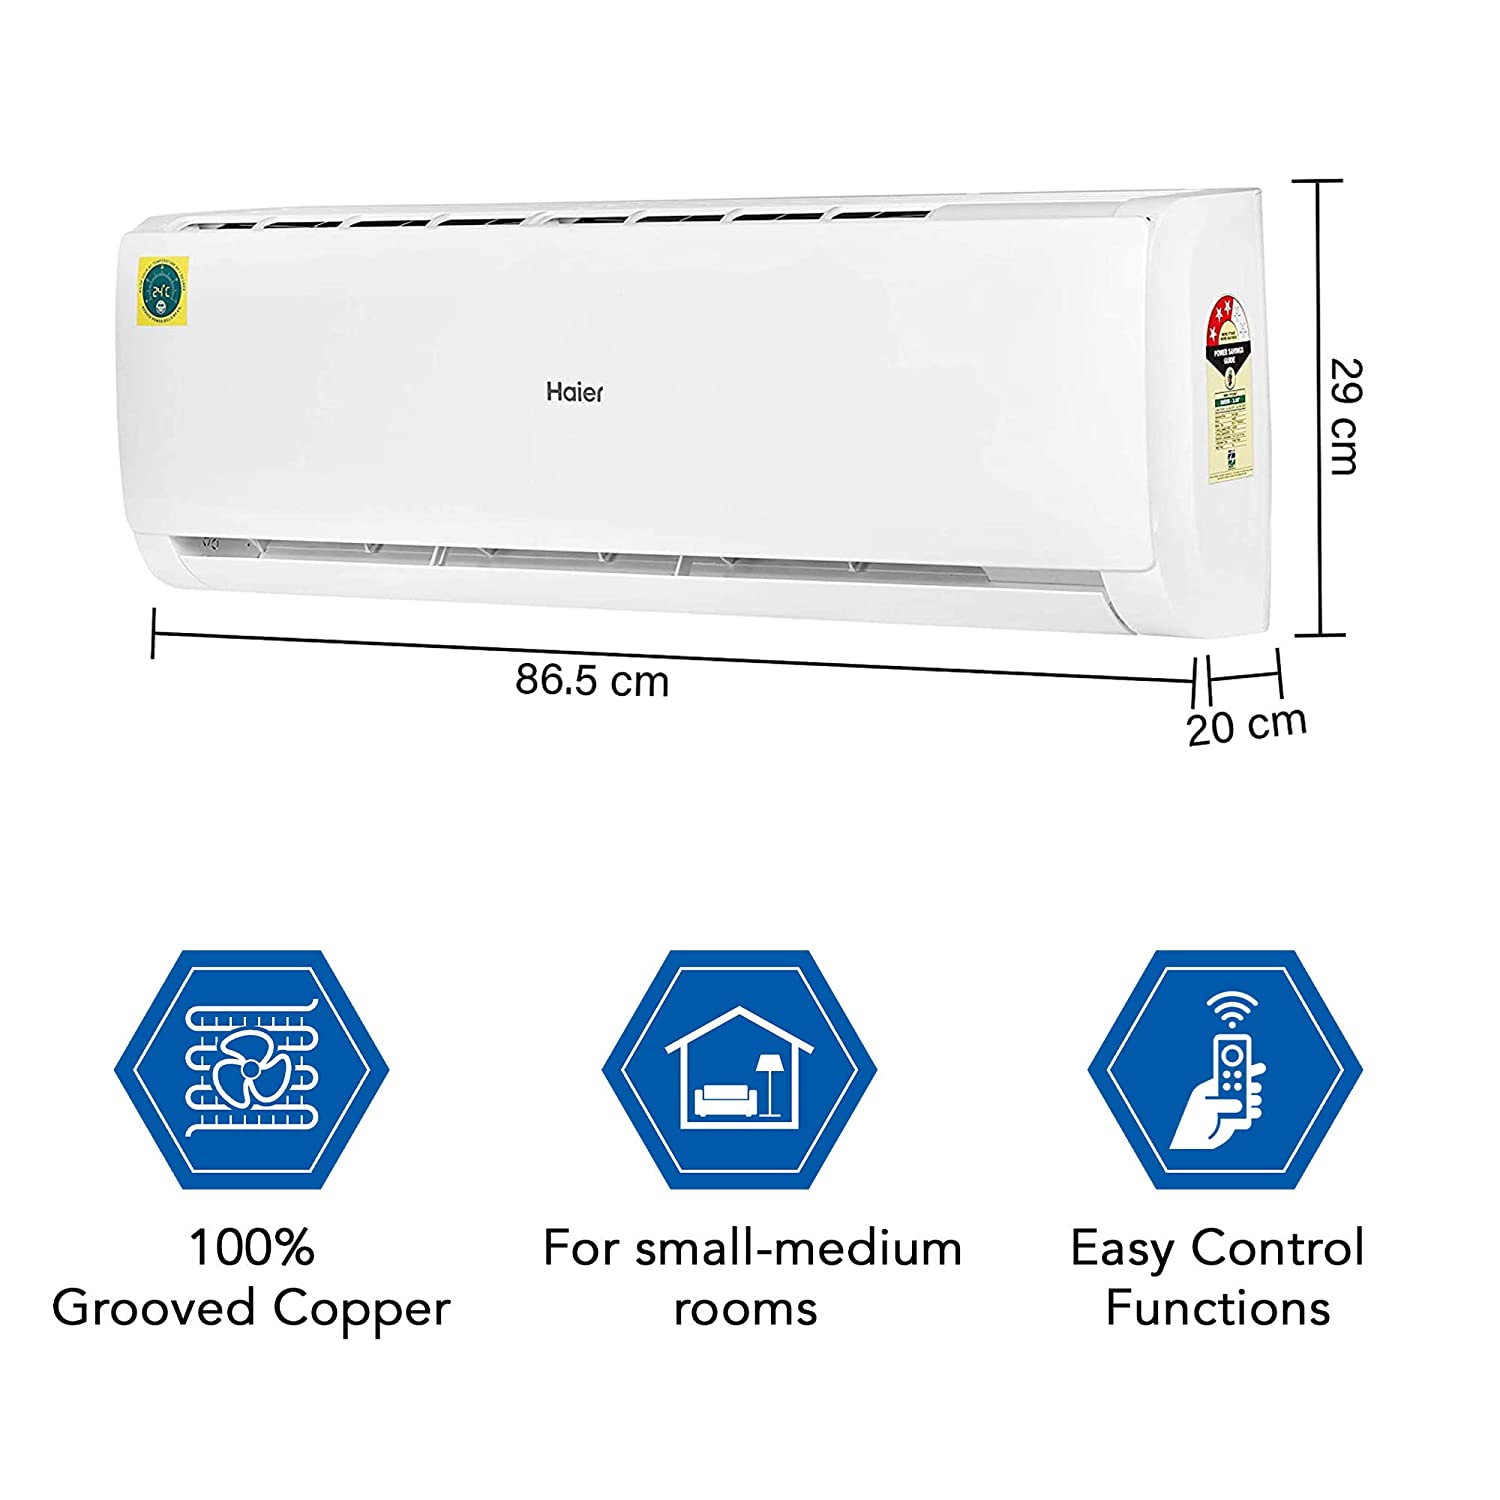 Best 3 Star air conditioners in India